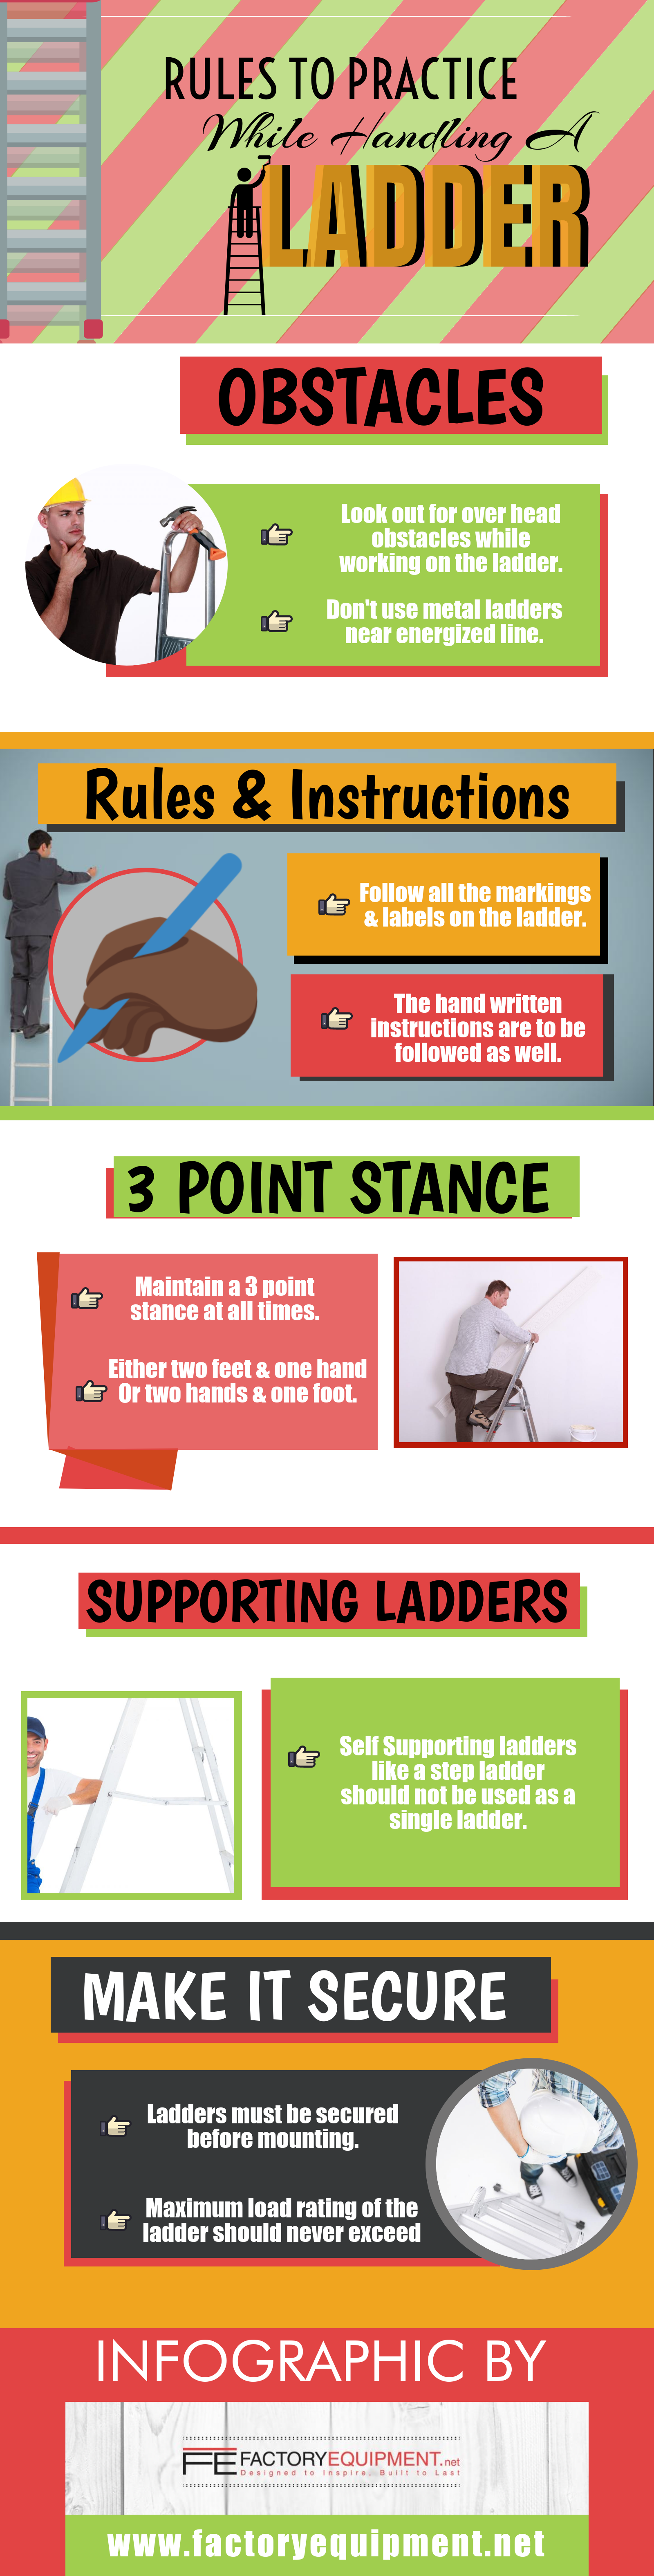 Rules to Practice While Handling A Ladder [ Infographic ]